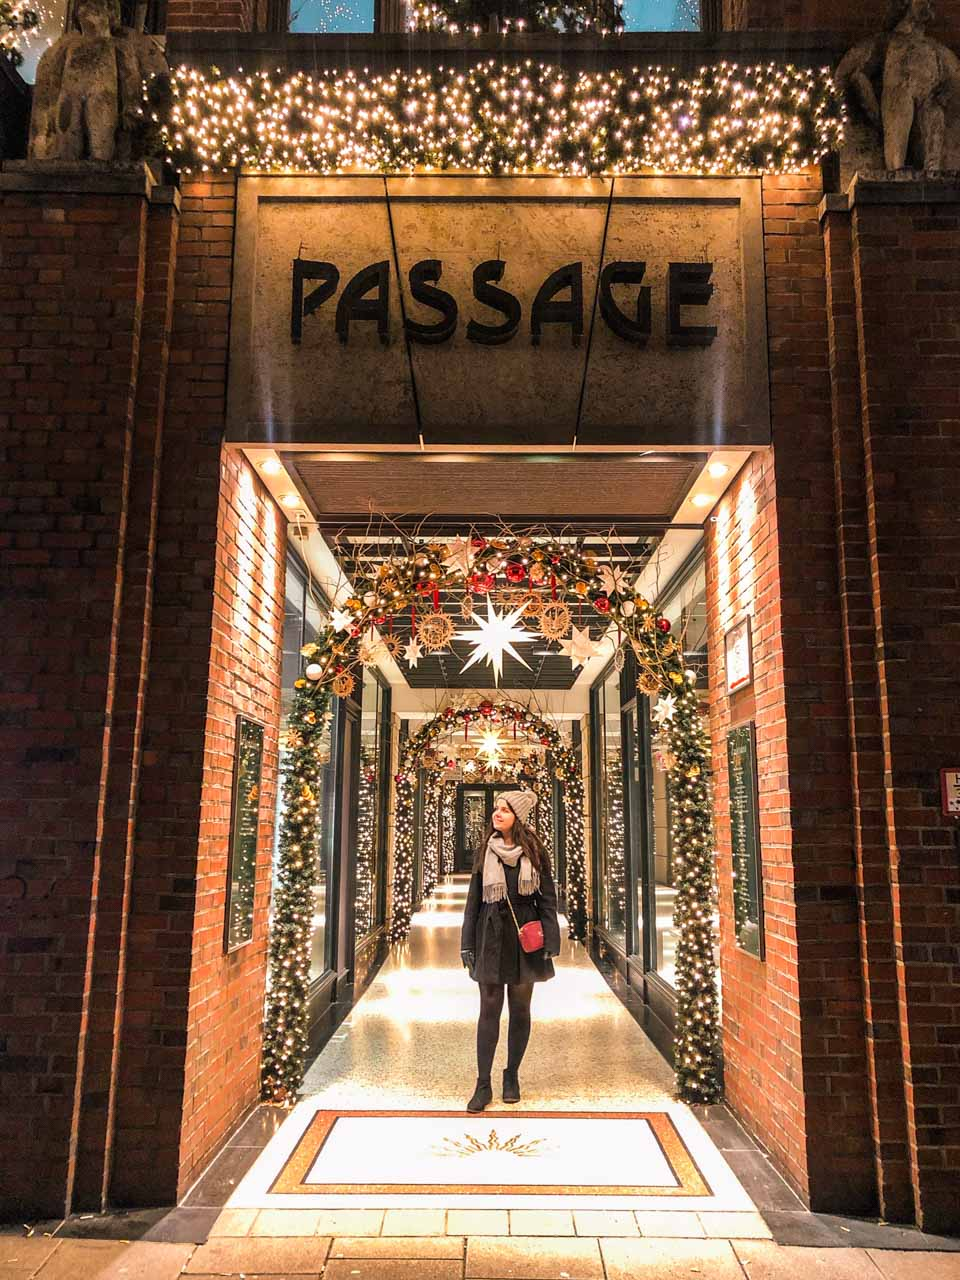 A girl standing in a passage decorated with Christmas lights